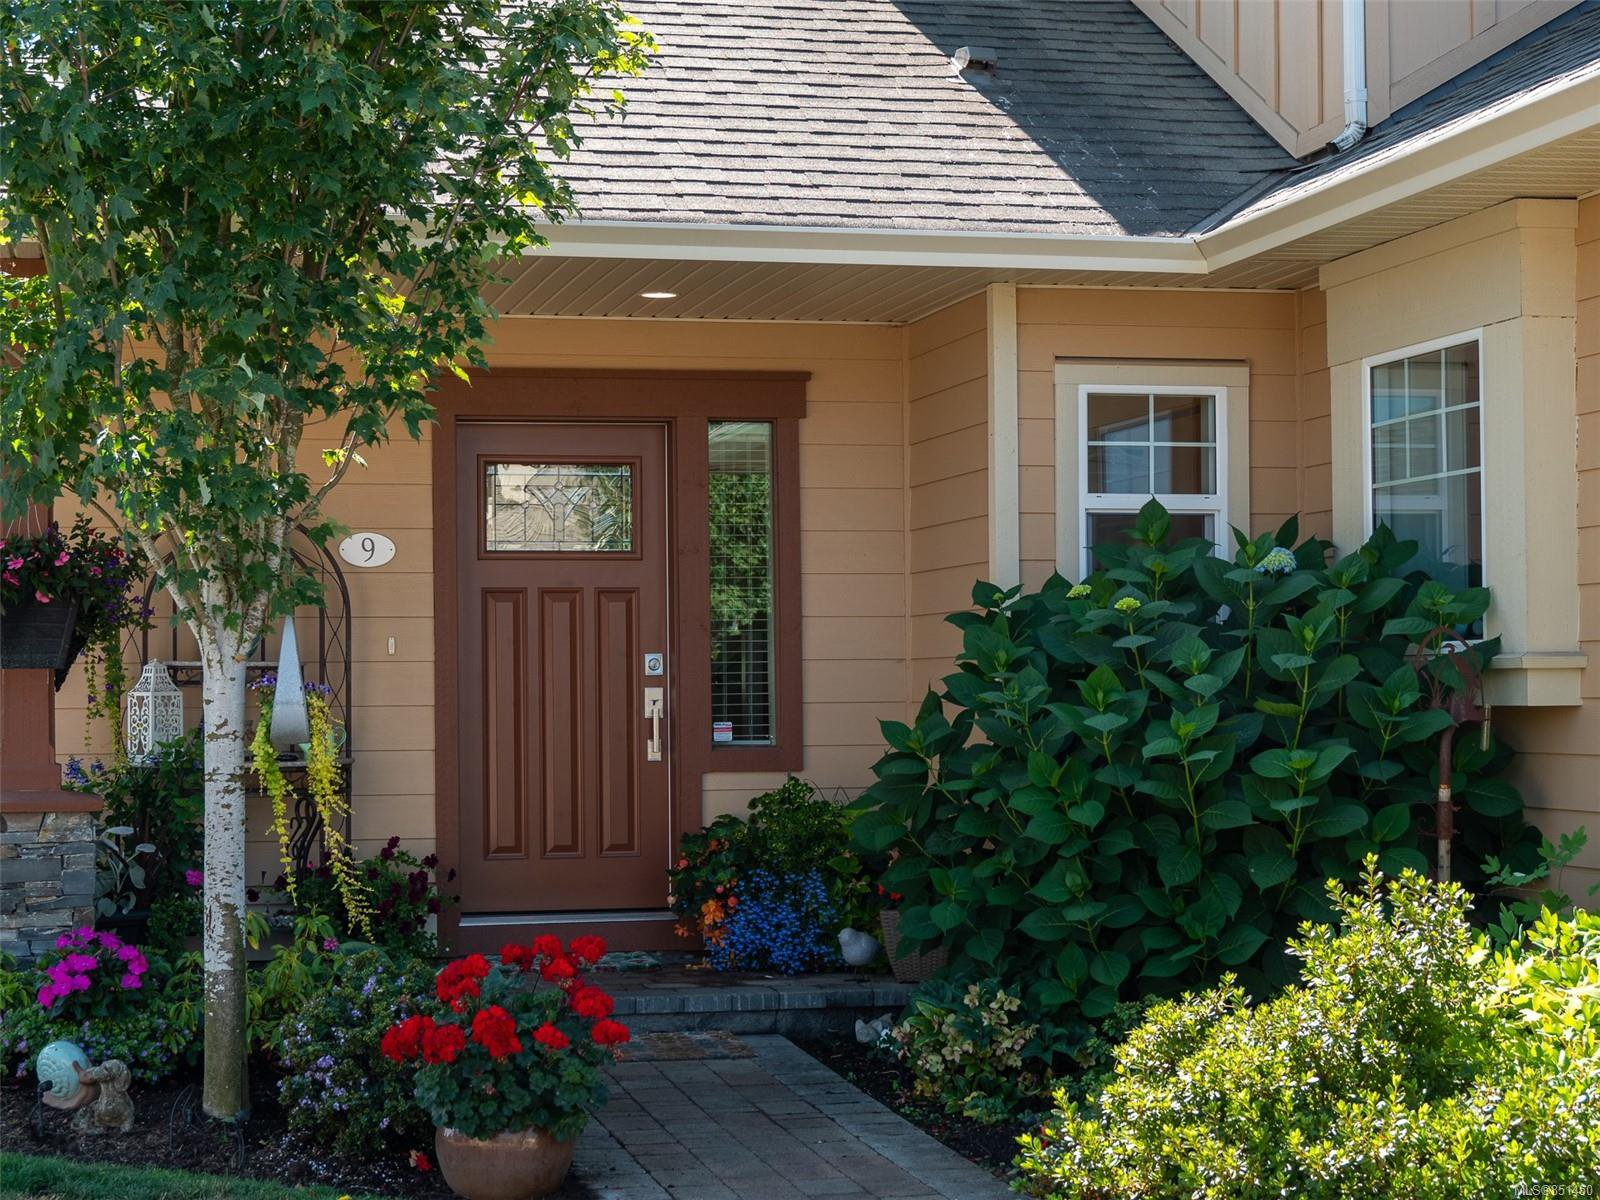 Main Photo: 9 7053 West Saanich Rd in : CS Brentwood Bay Row/Townhouse for sale (Central Saanich)  : MLS®# 851450